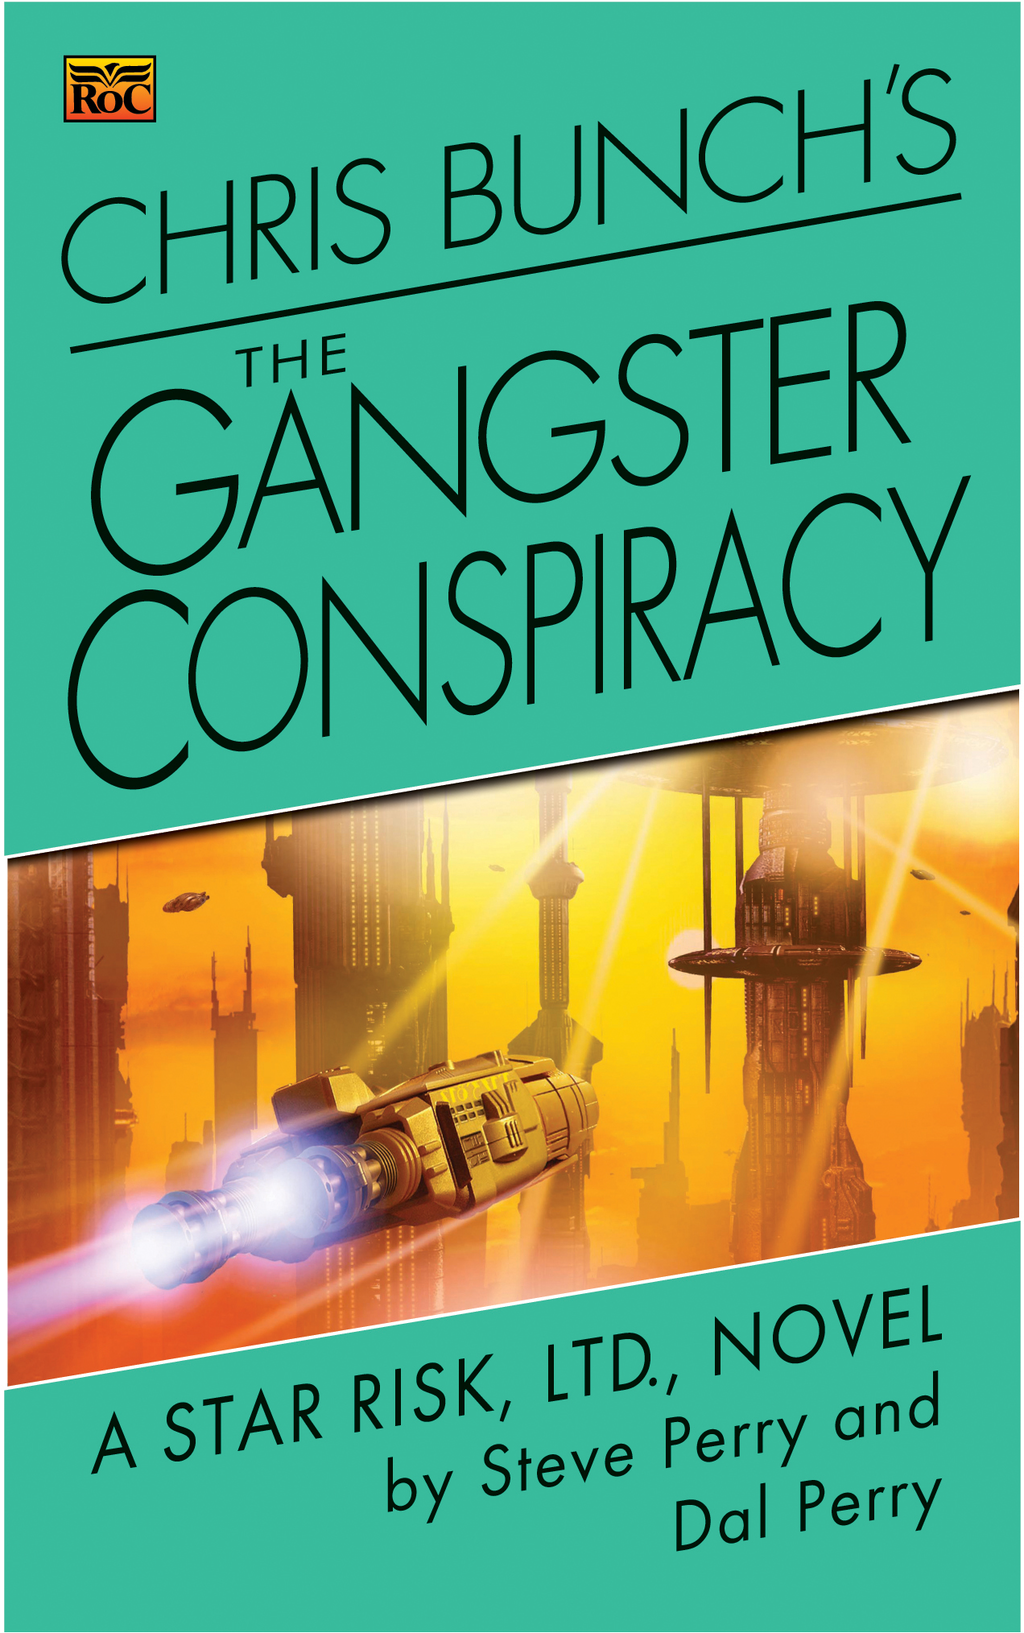 Chris Bunch's The Gangster Conspiracy